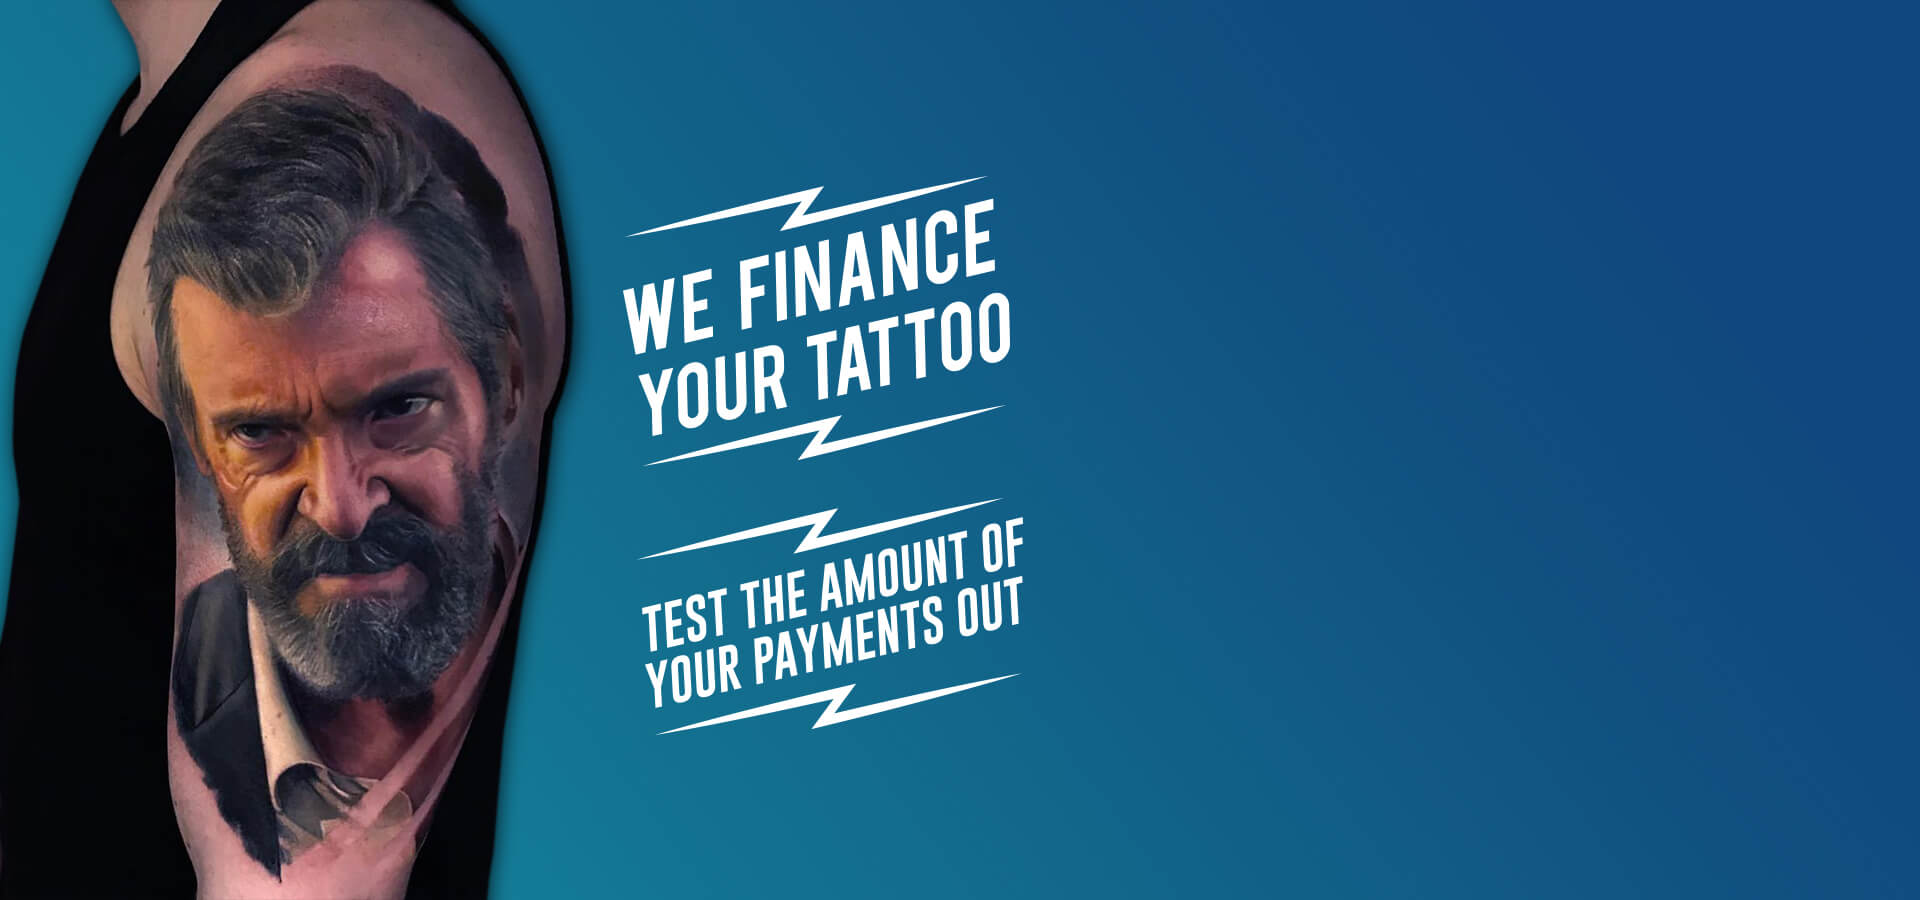 We finance your tattoo